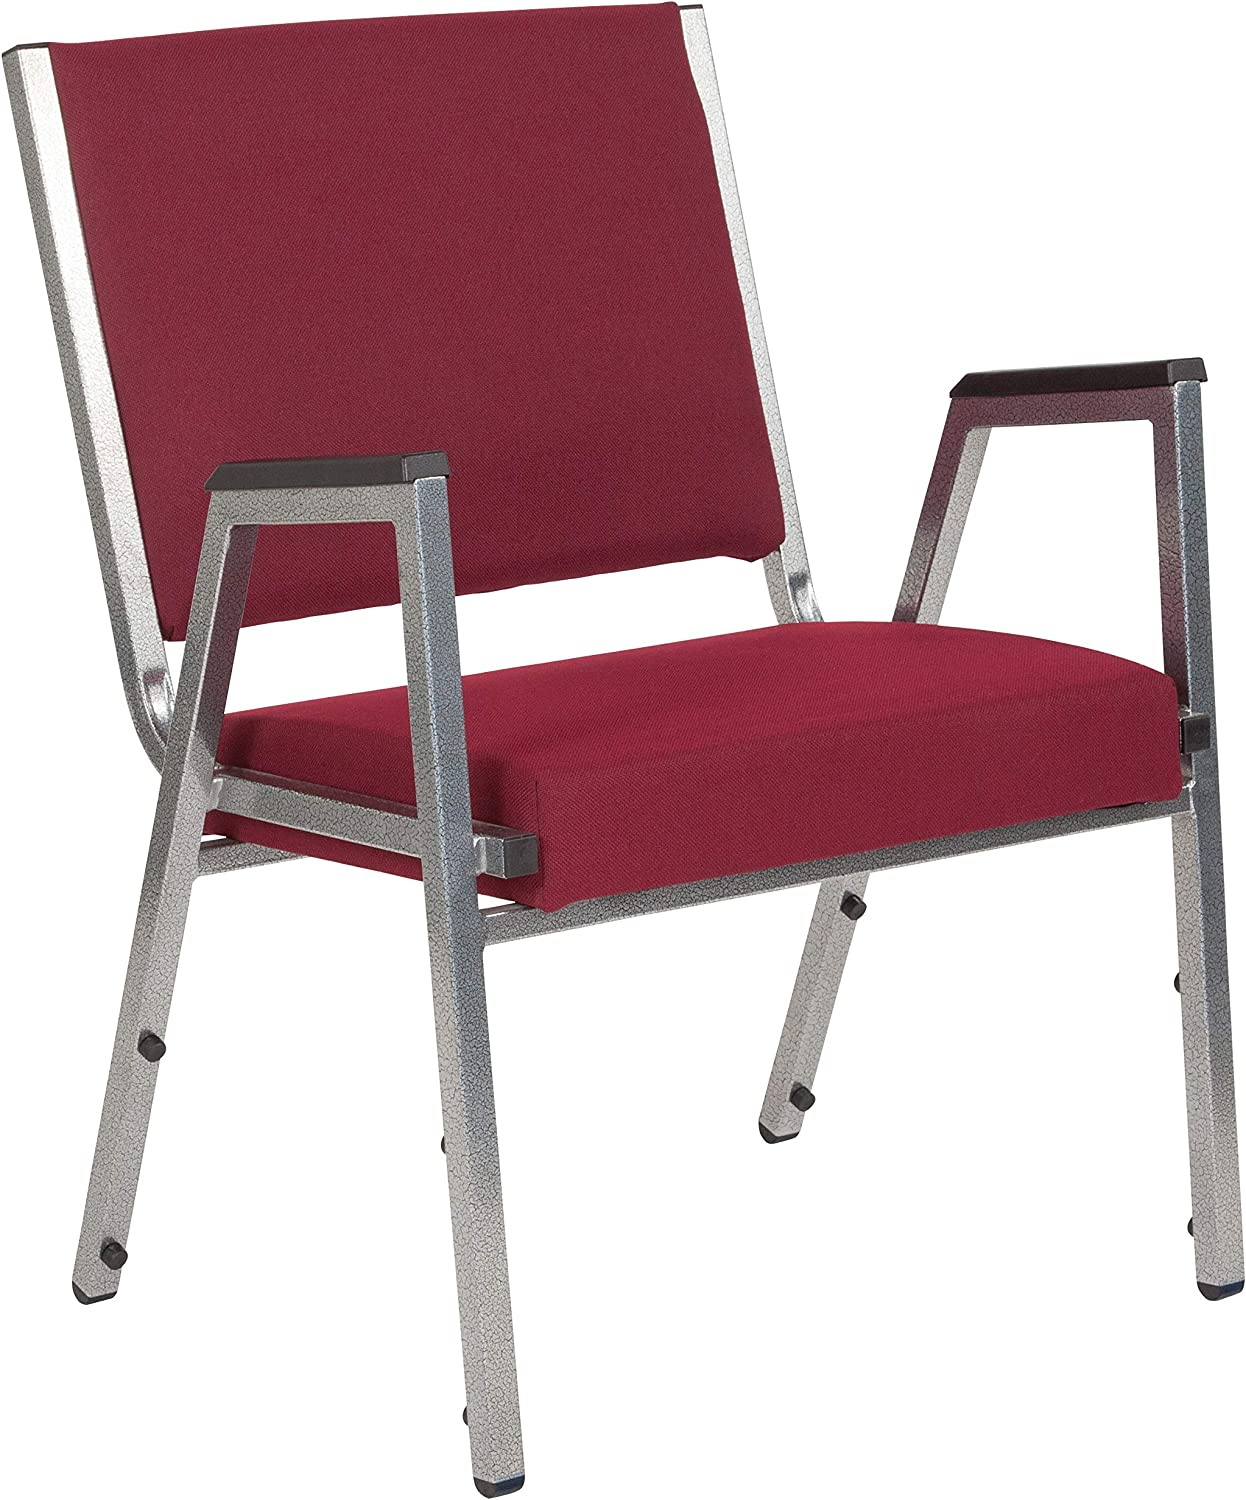 Flash Furniture HERCULES Series 1500 lb. Rated Burgundy Antimicrobial Fabric Bariatric Medical Reception Arm Chair